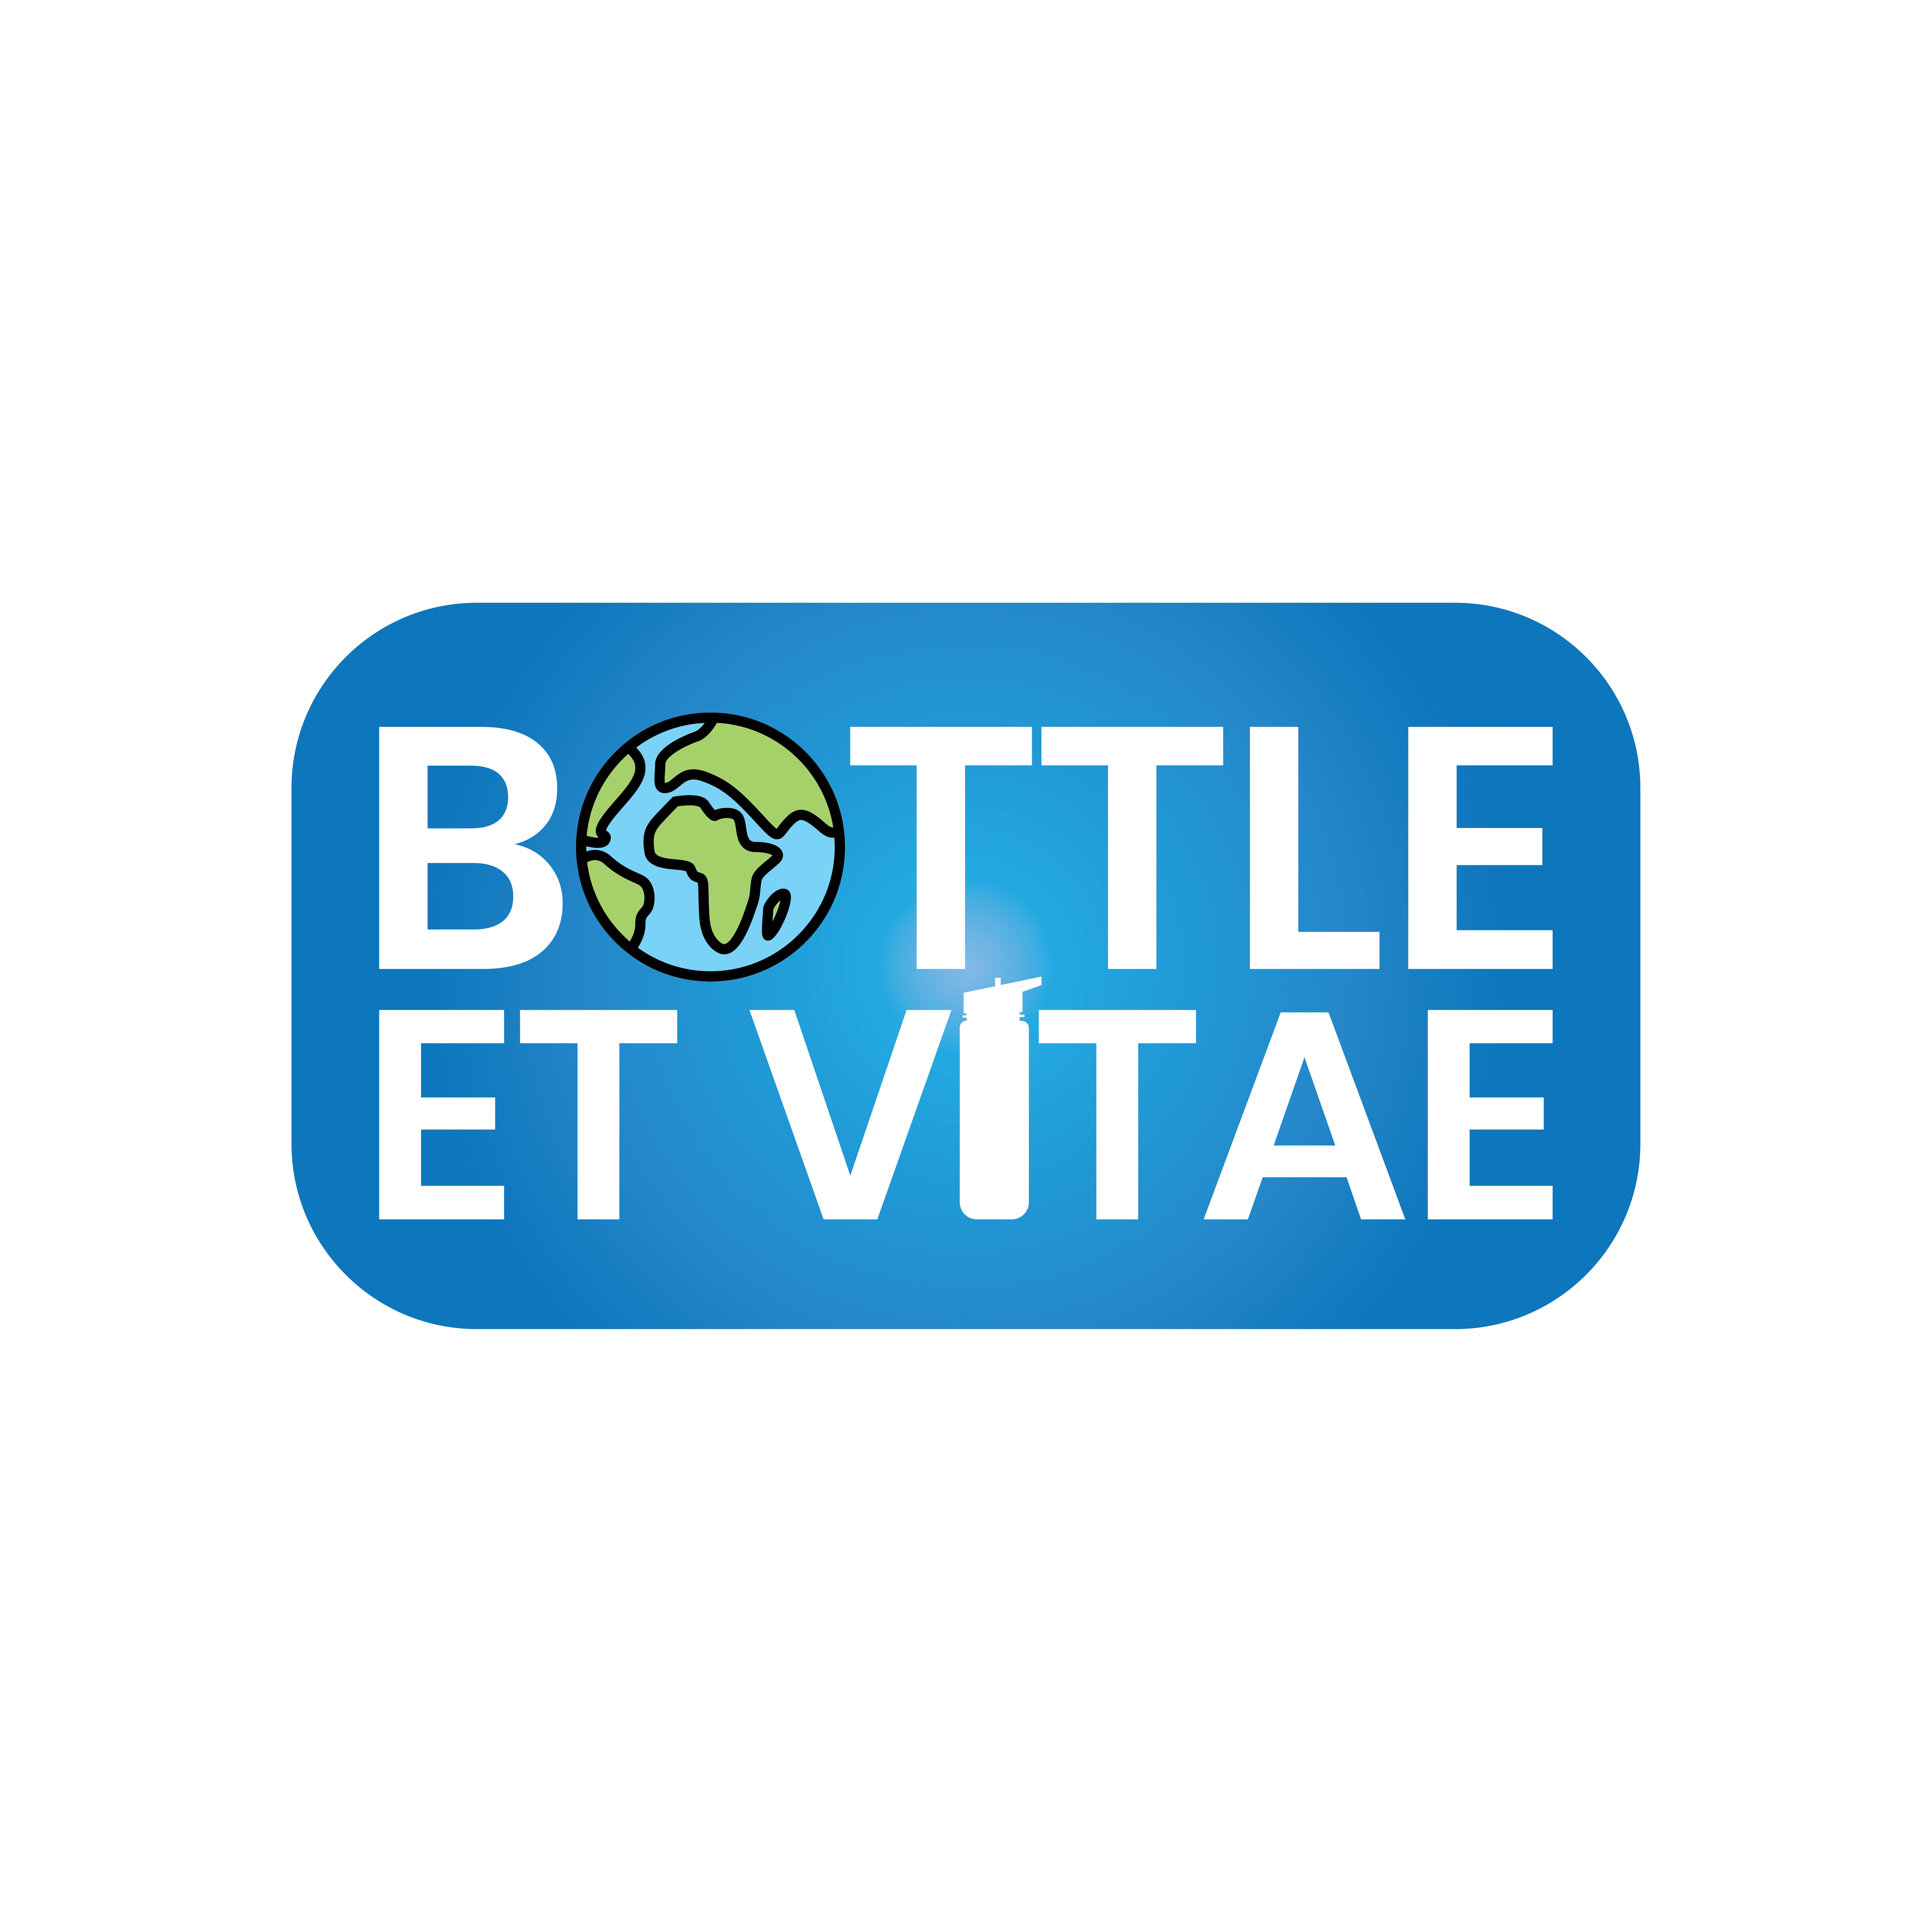 https://www.waterforlife.nl/files/visuals/avatars/Logo-official-002.jpg